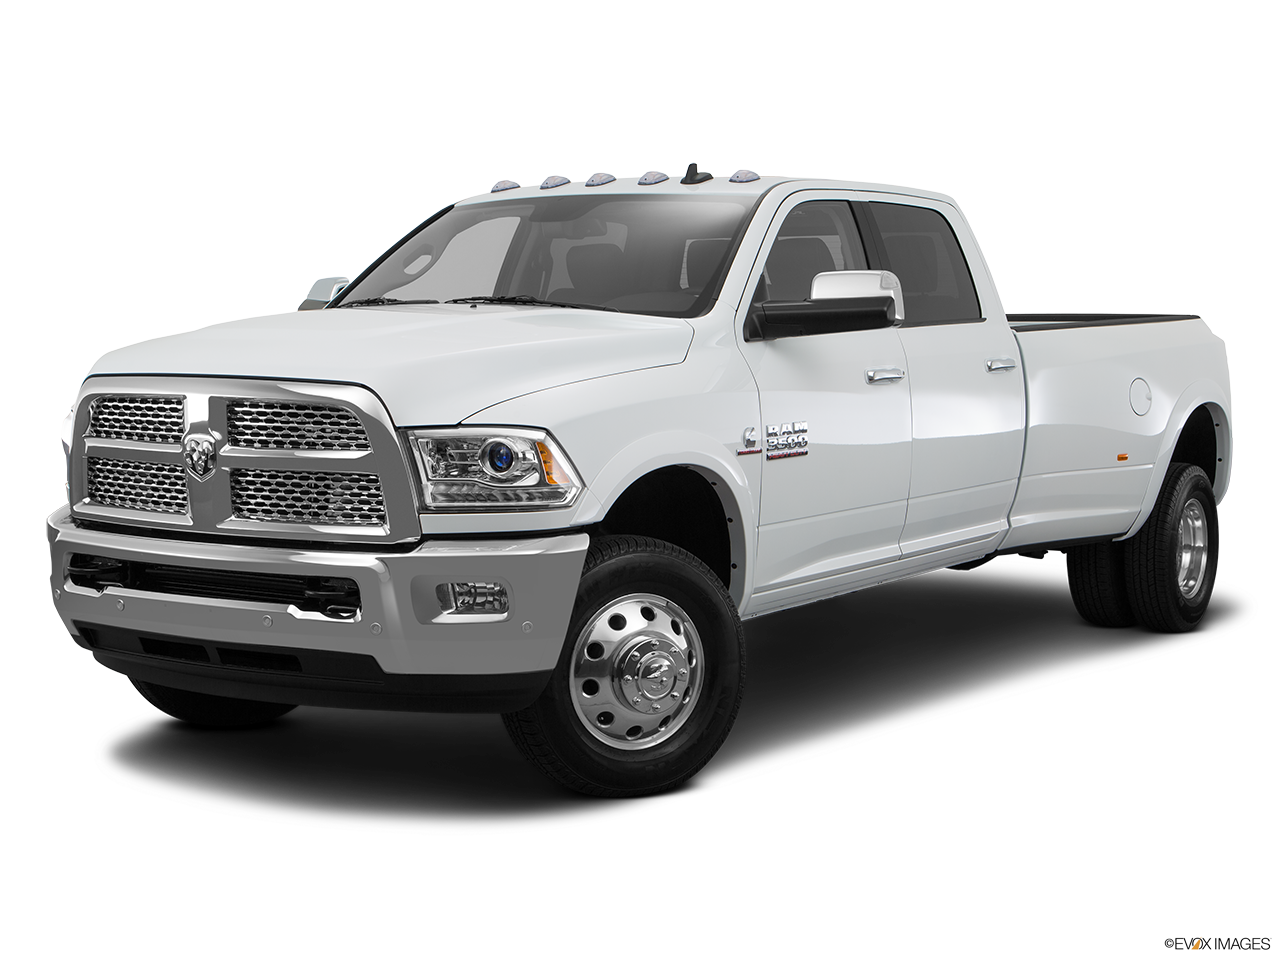 Test Drive A 2016 RAM 3500 DRW at Carl Burger Dodge Chrysler Jeep Ram World in La Mesa